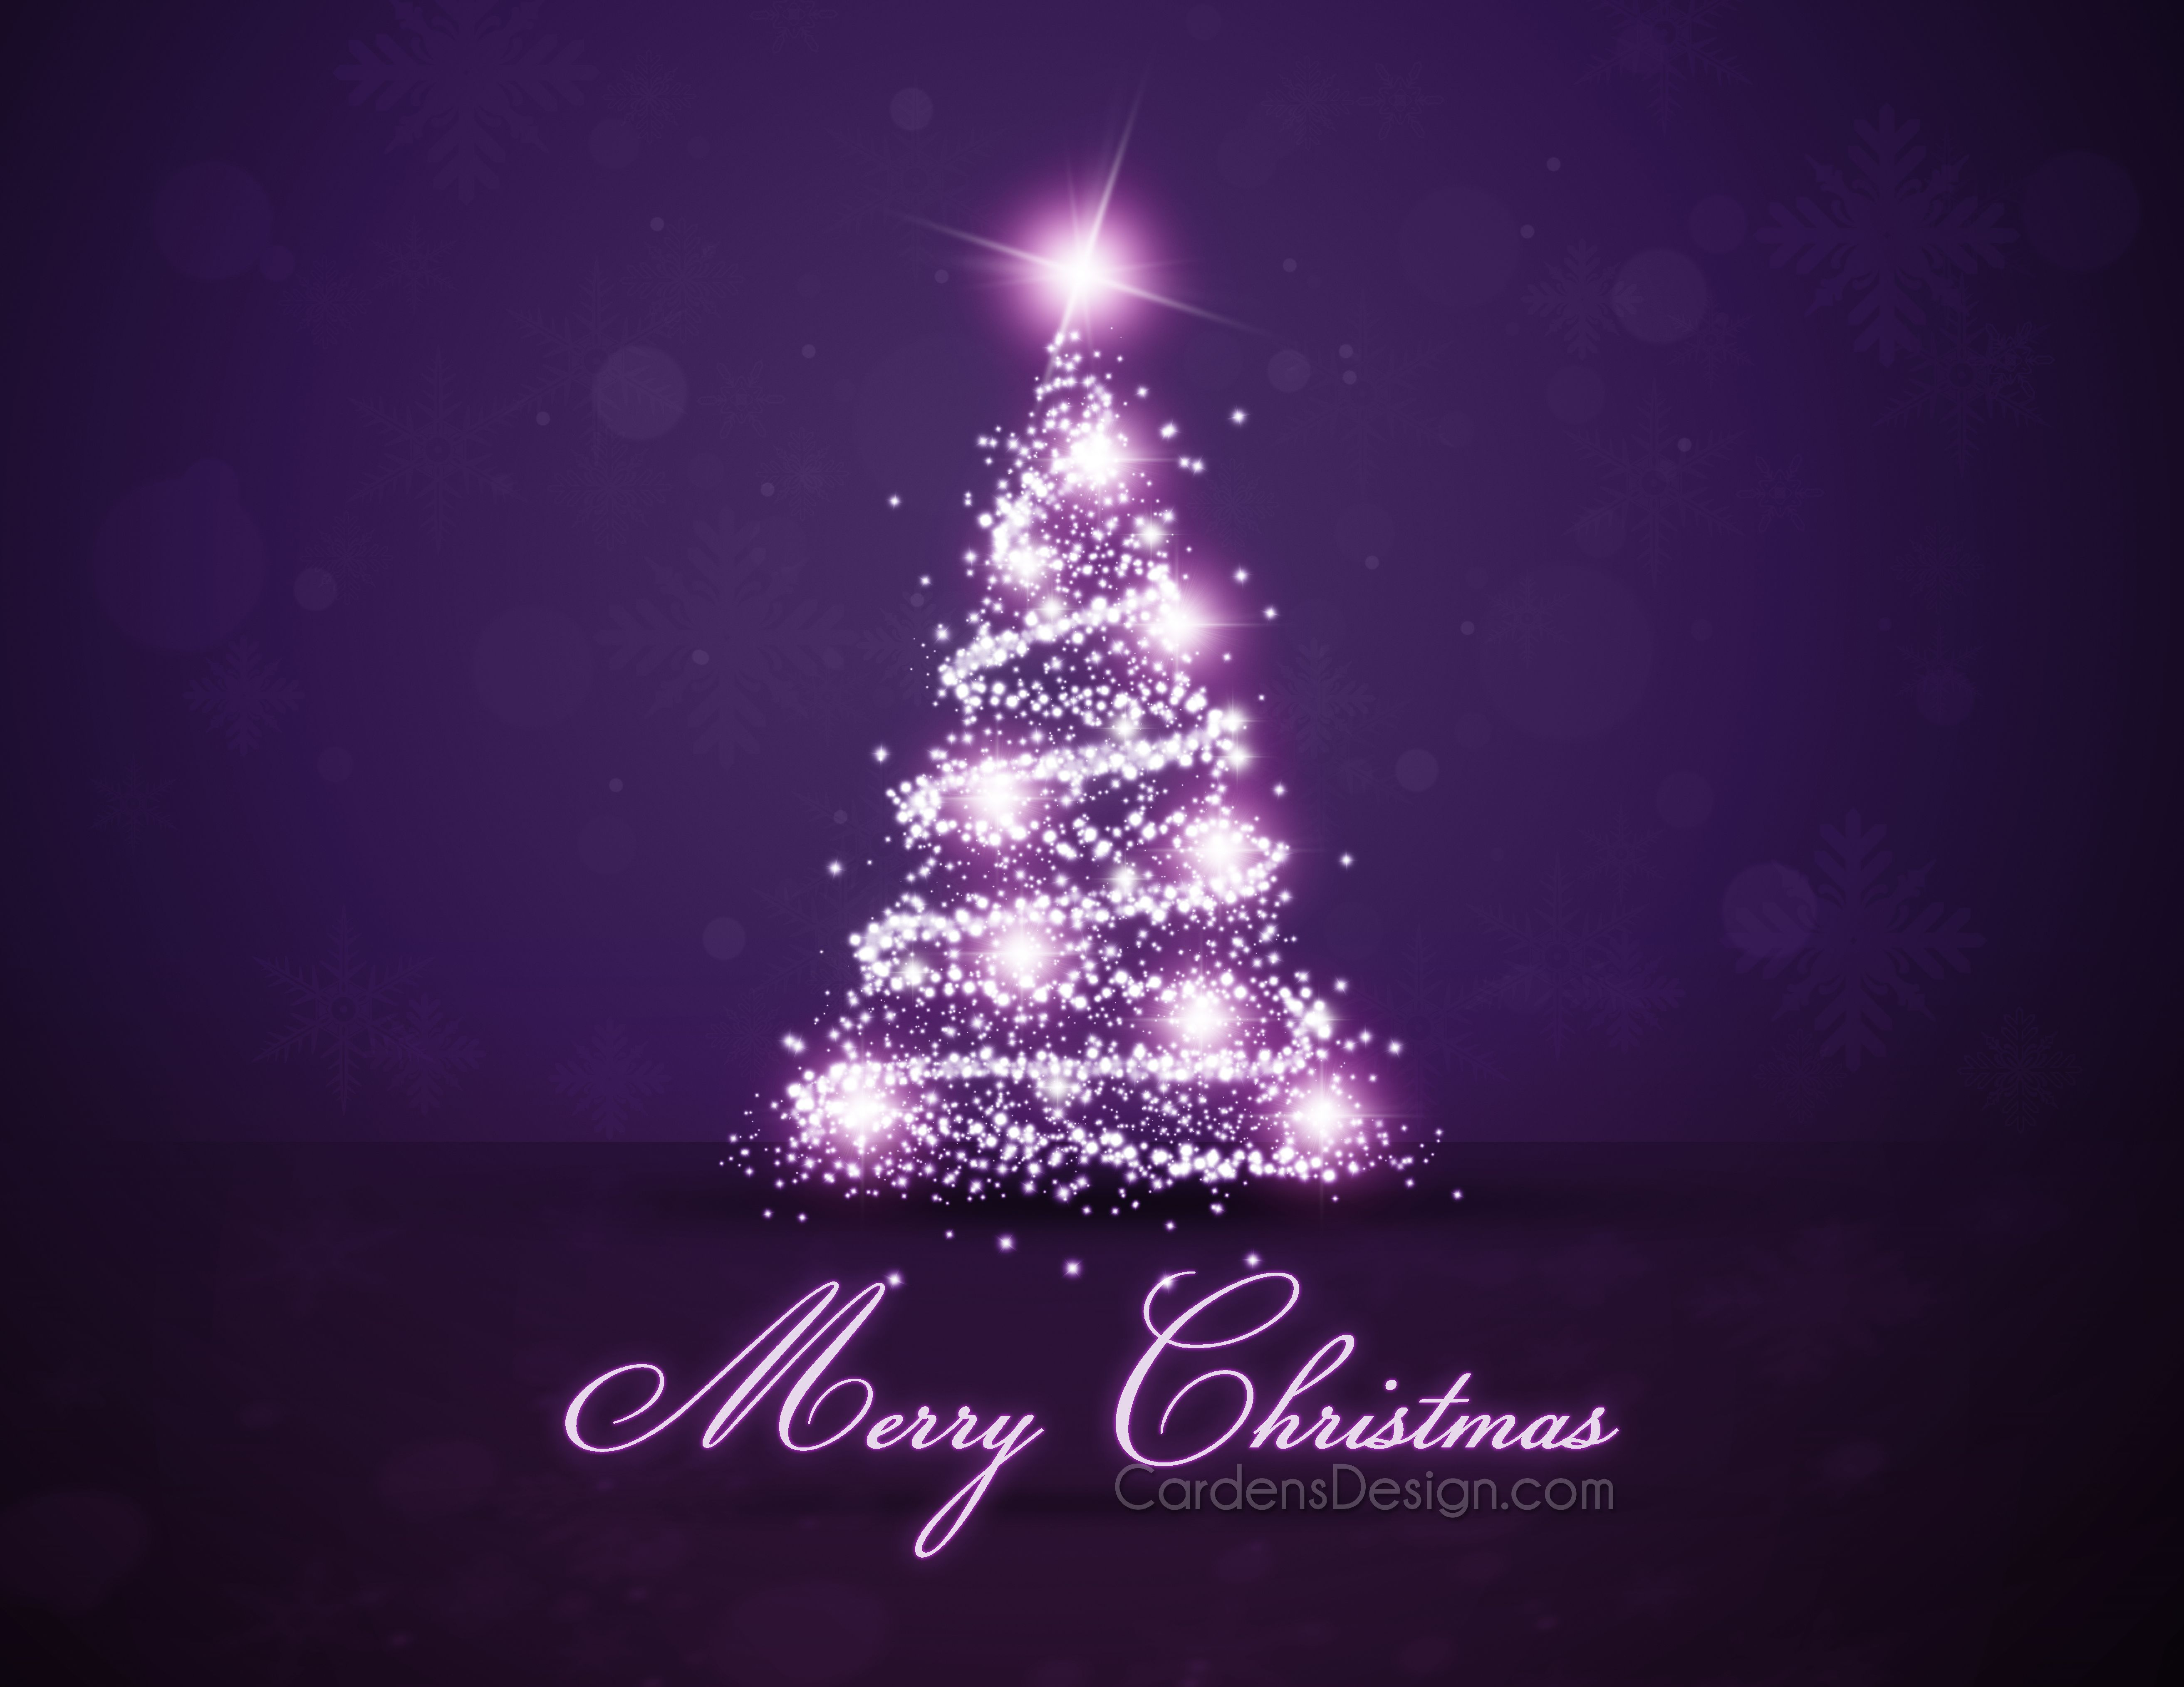 Great Christmas card Christmas tree images, Purple christmas